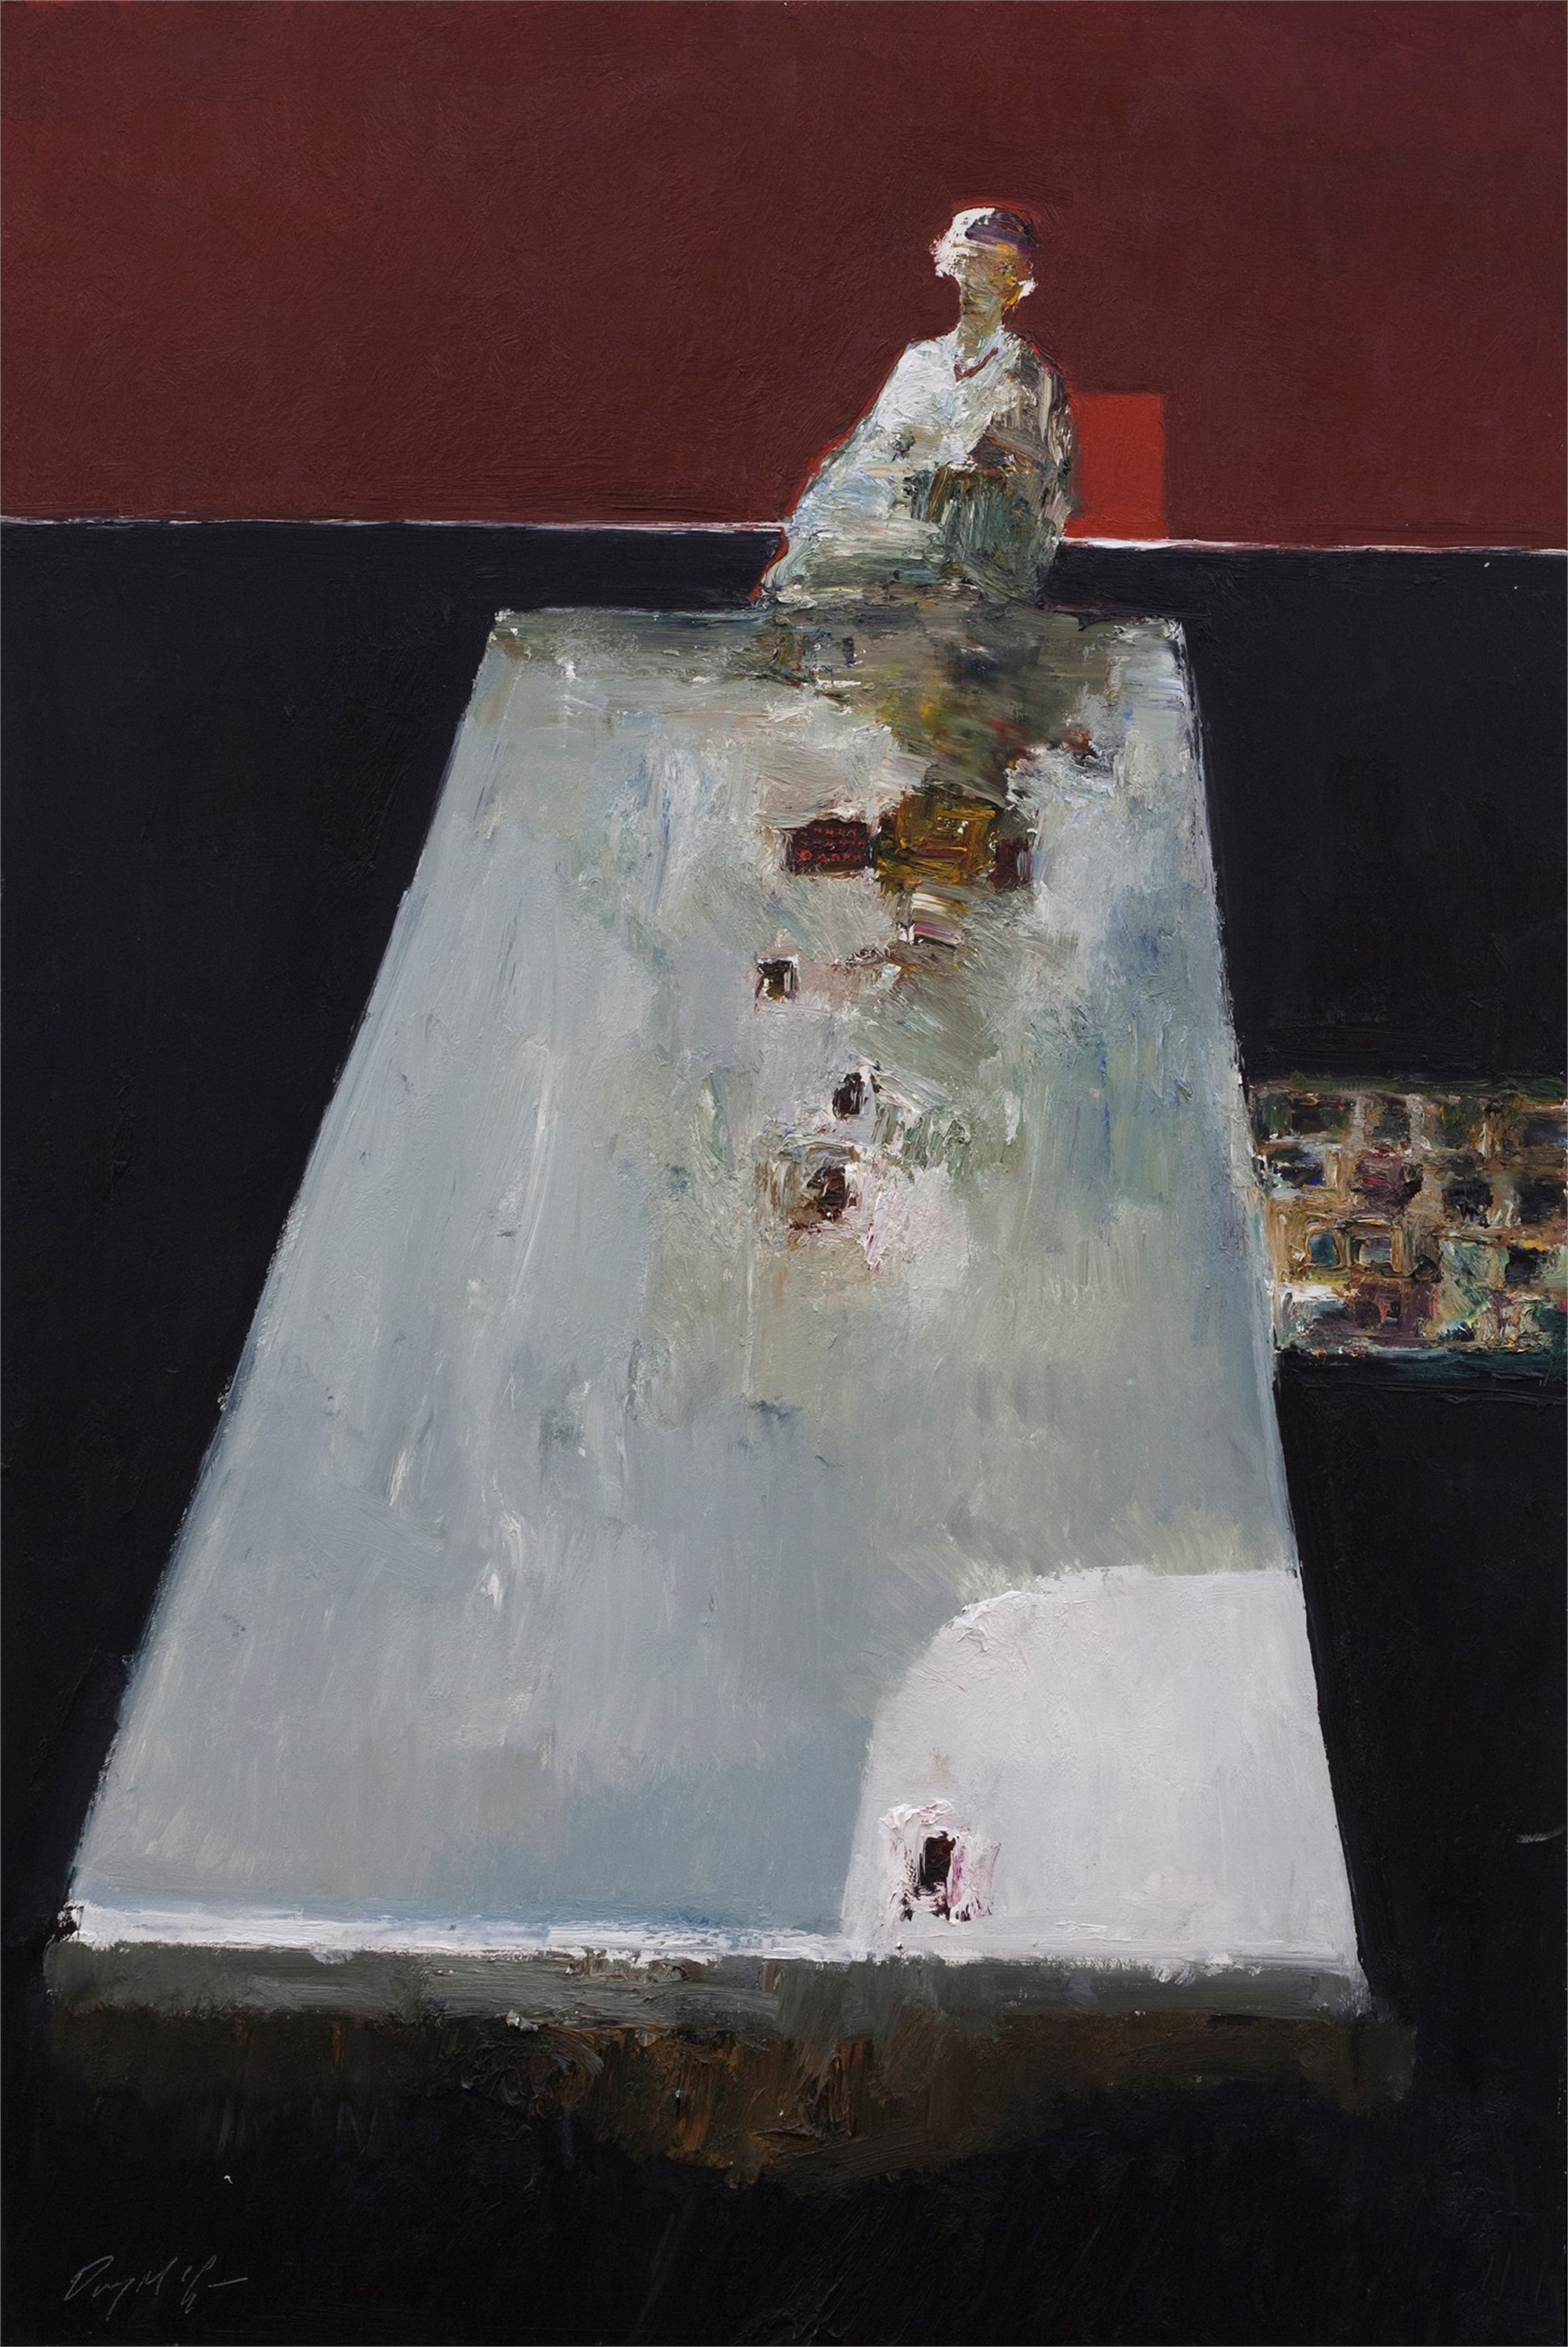 Head of Table by Danny McCaw